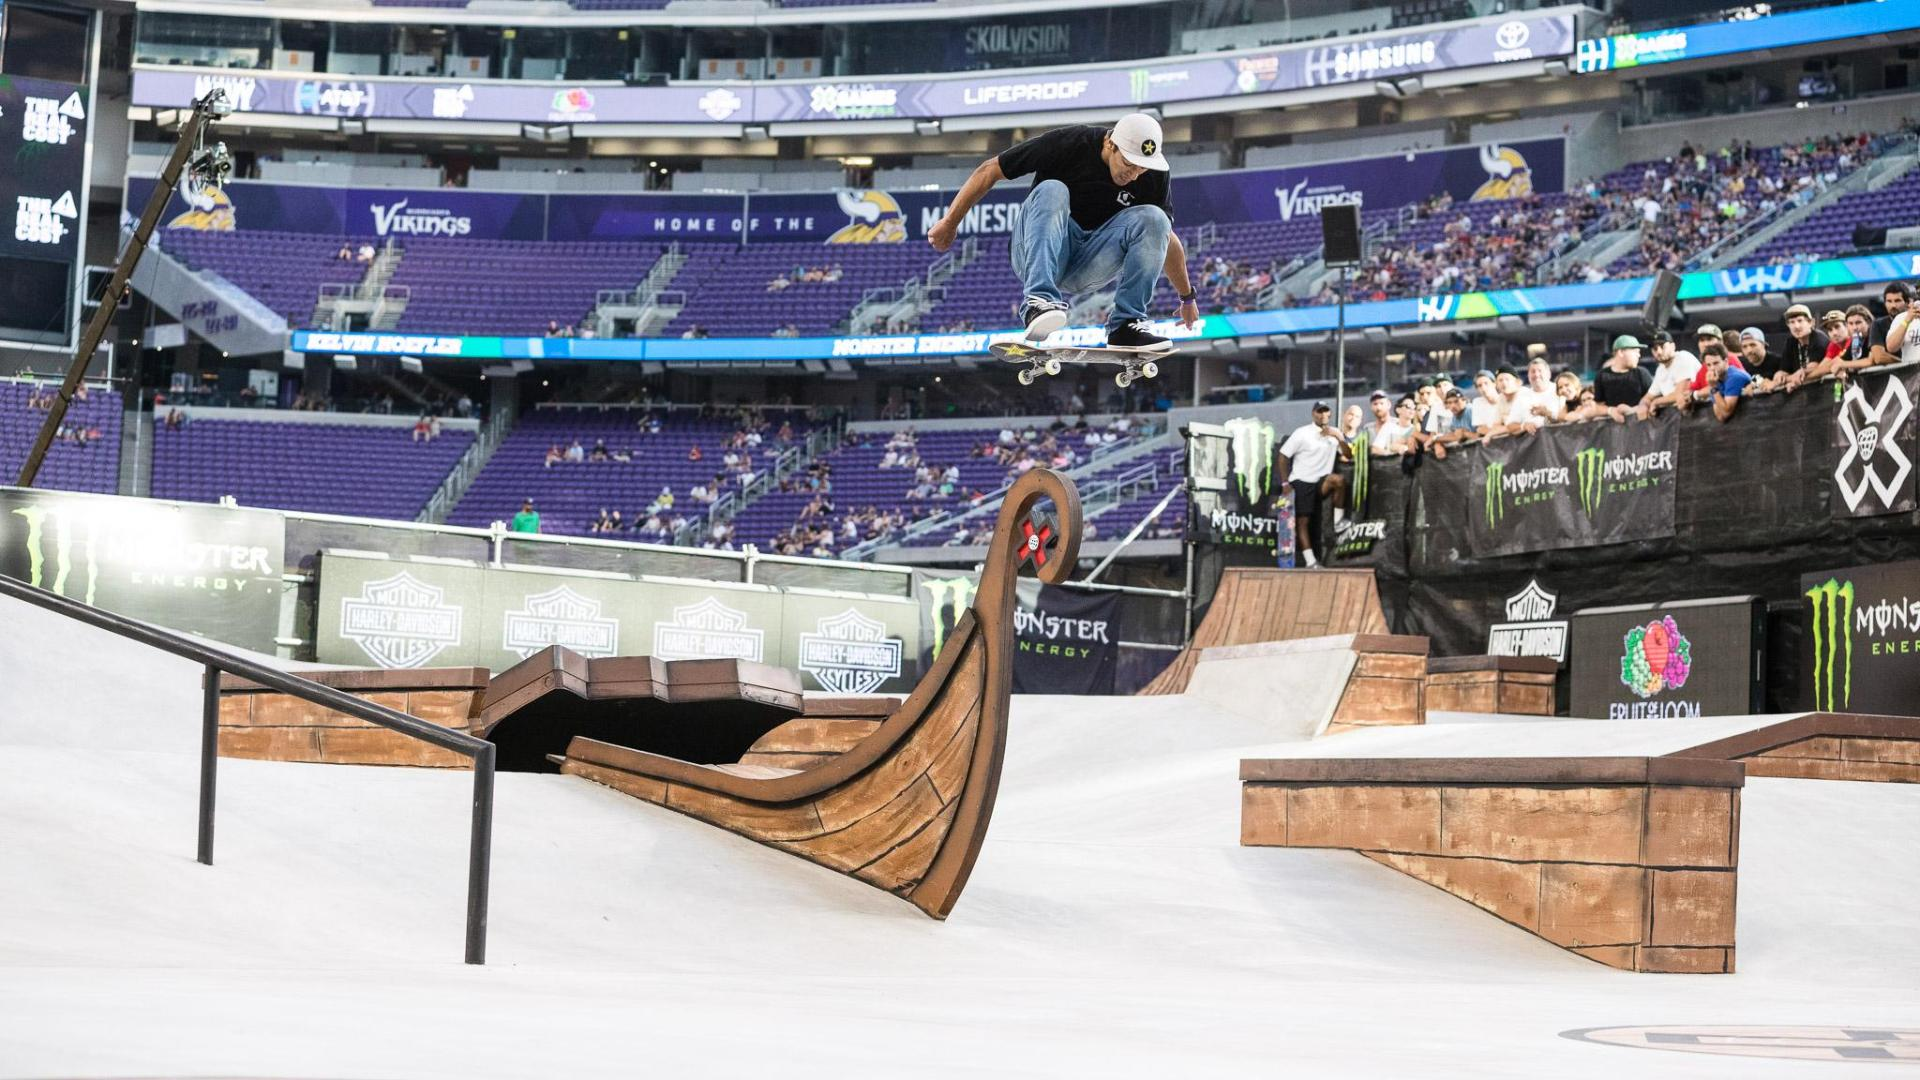 Top Moments from 2017: Full World of X Games episode